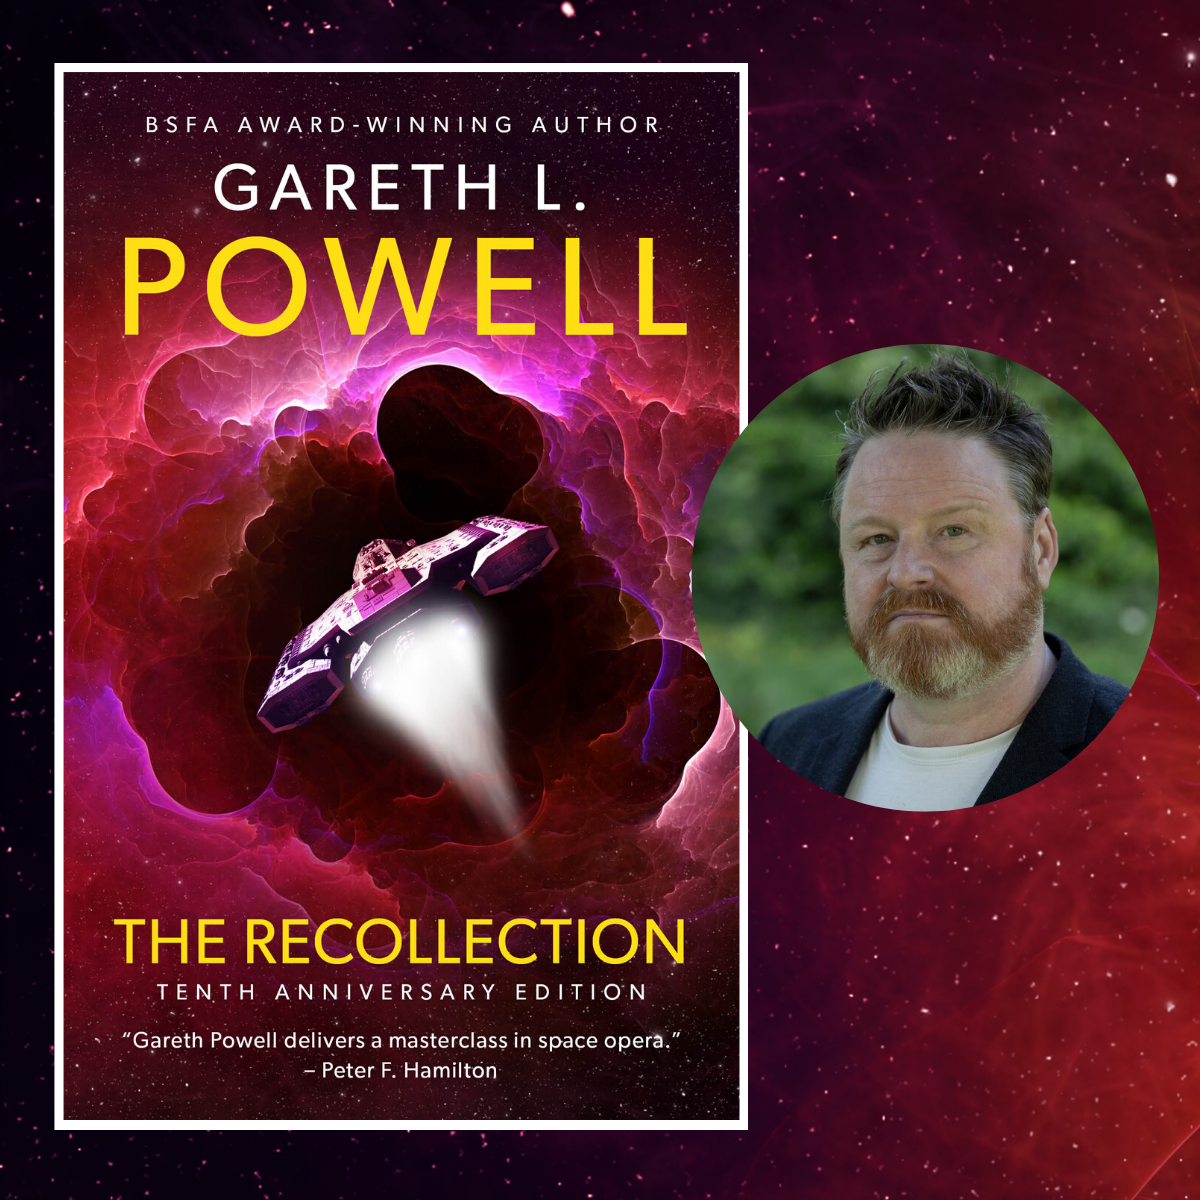 Tenth Anniversary Edition of The Recollection by Gareth L. Powell